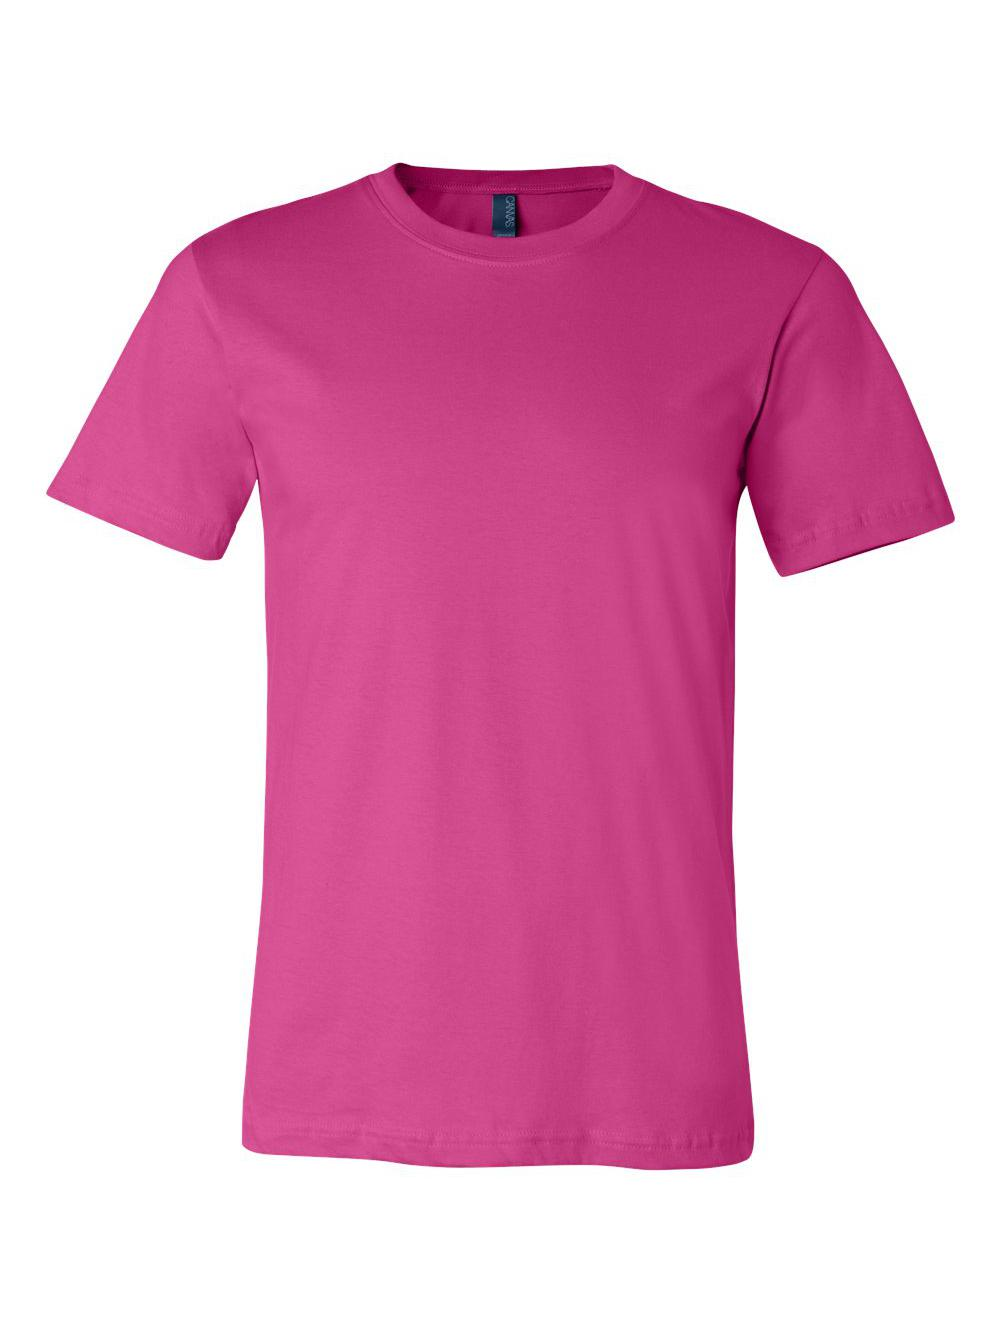 Bella-Canvas-Unisex-Short-Sleeve-Jersey-Tee-3001 thumbnail 18